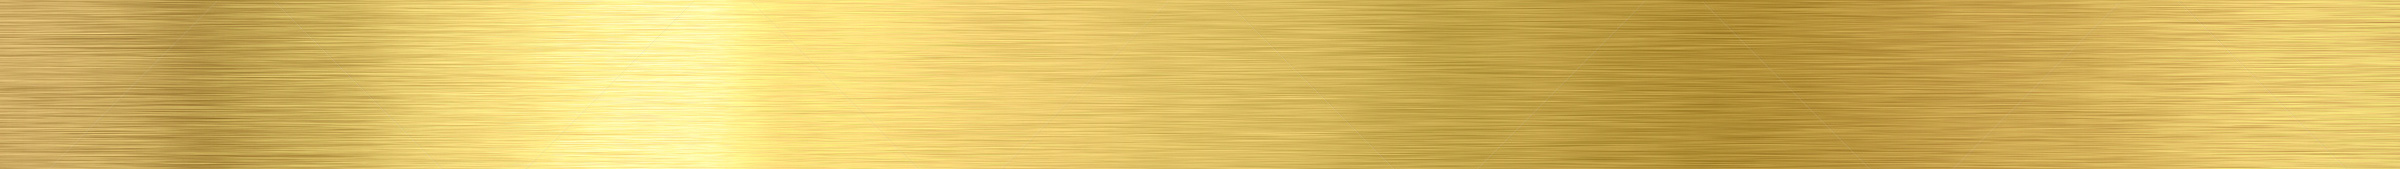 gold-background.jpg